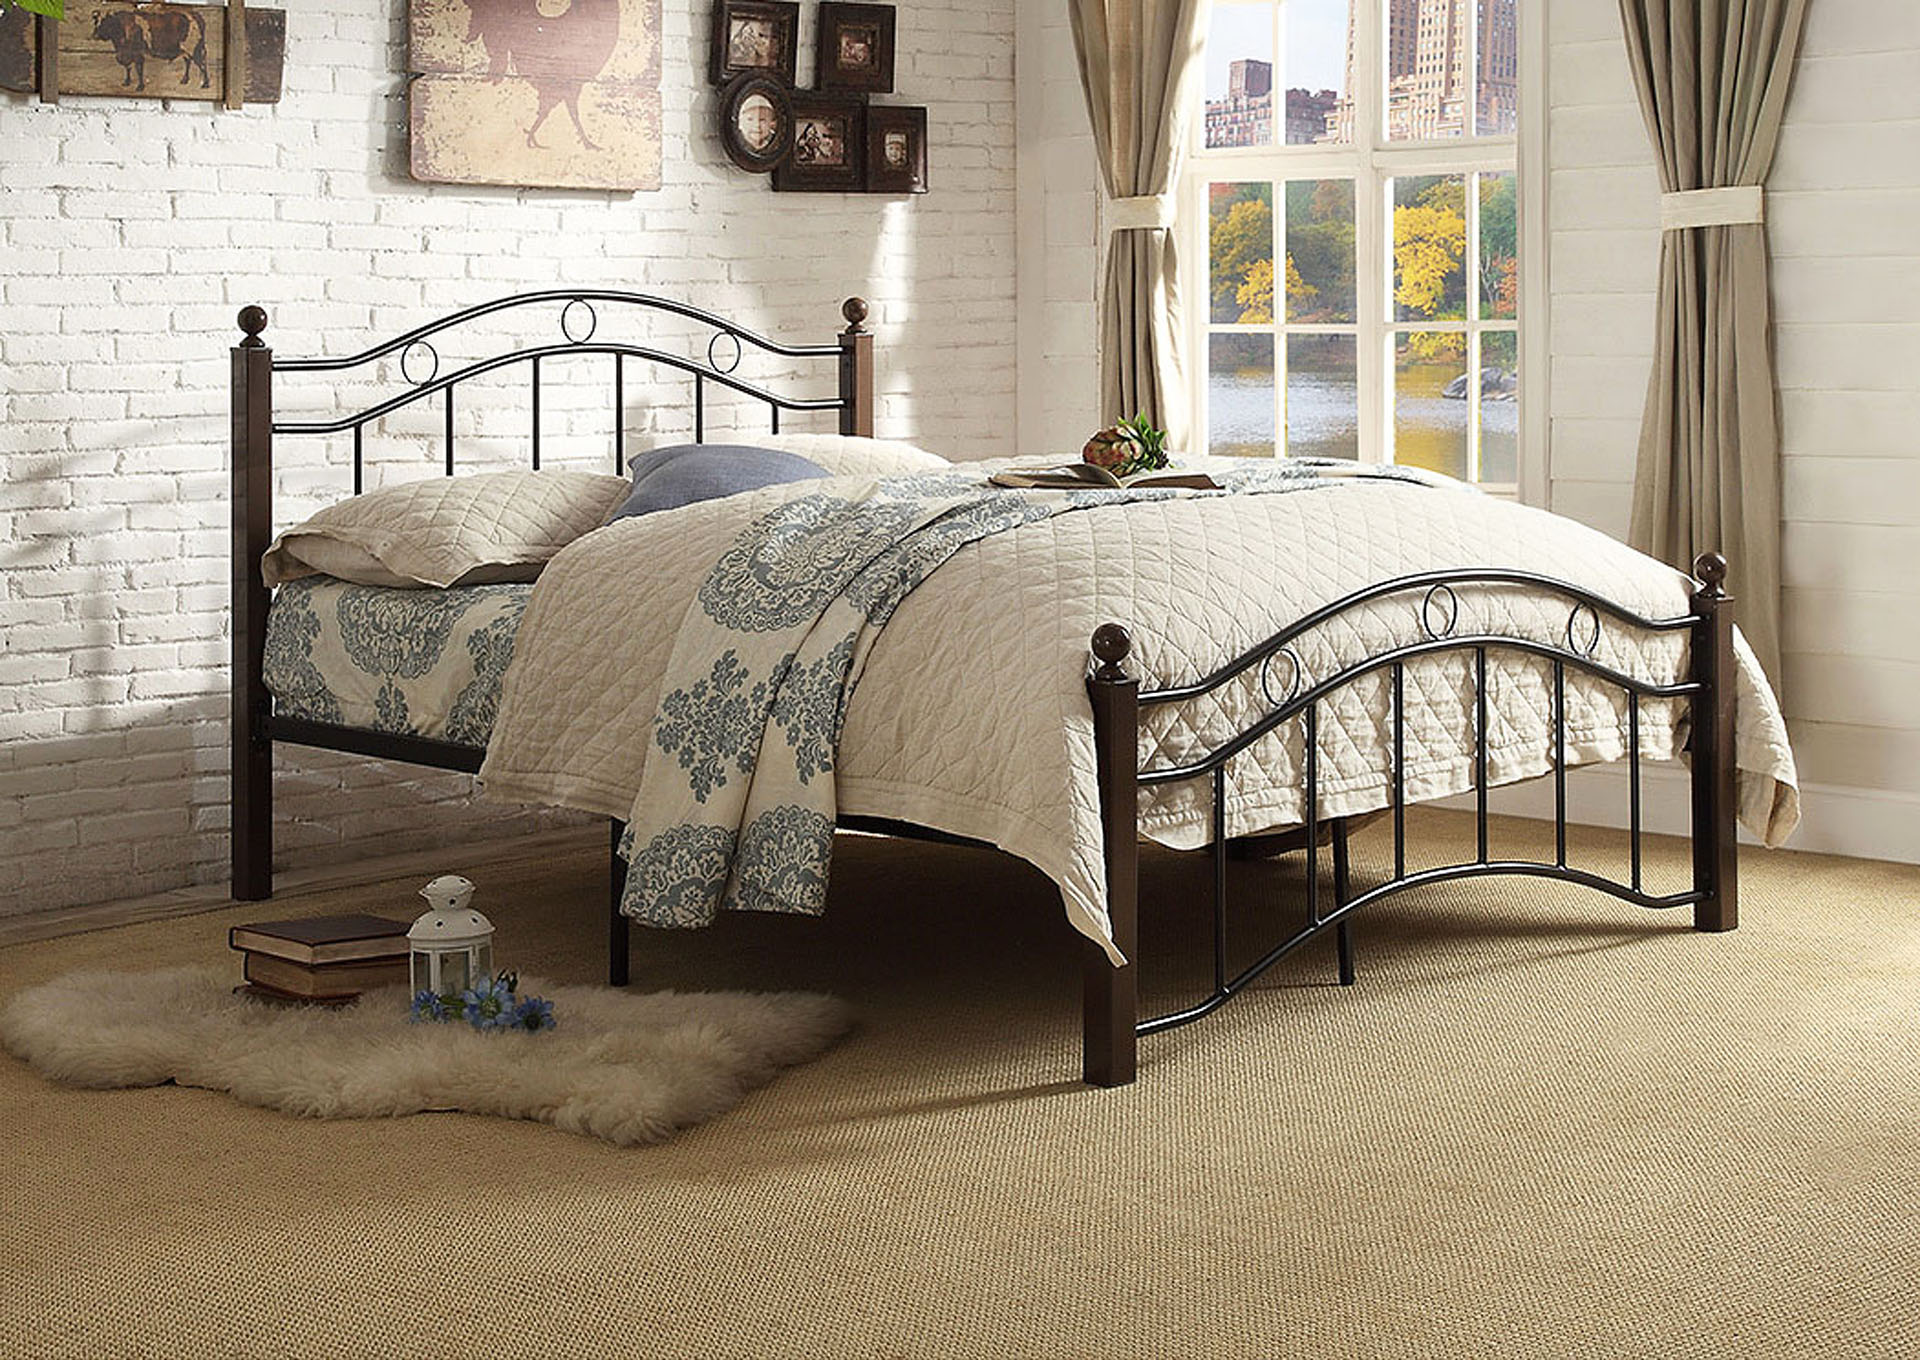 Averny Black and Brown Platform Full Bed,Homelegance